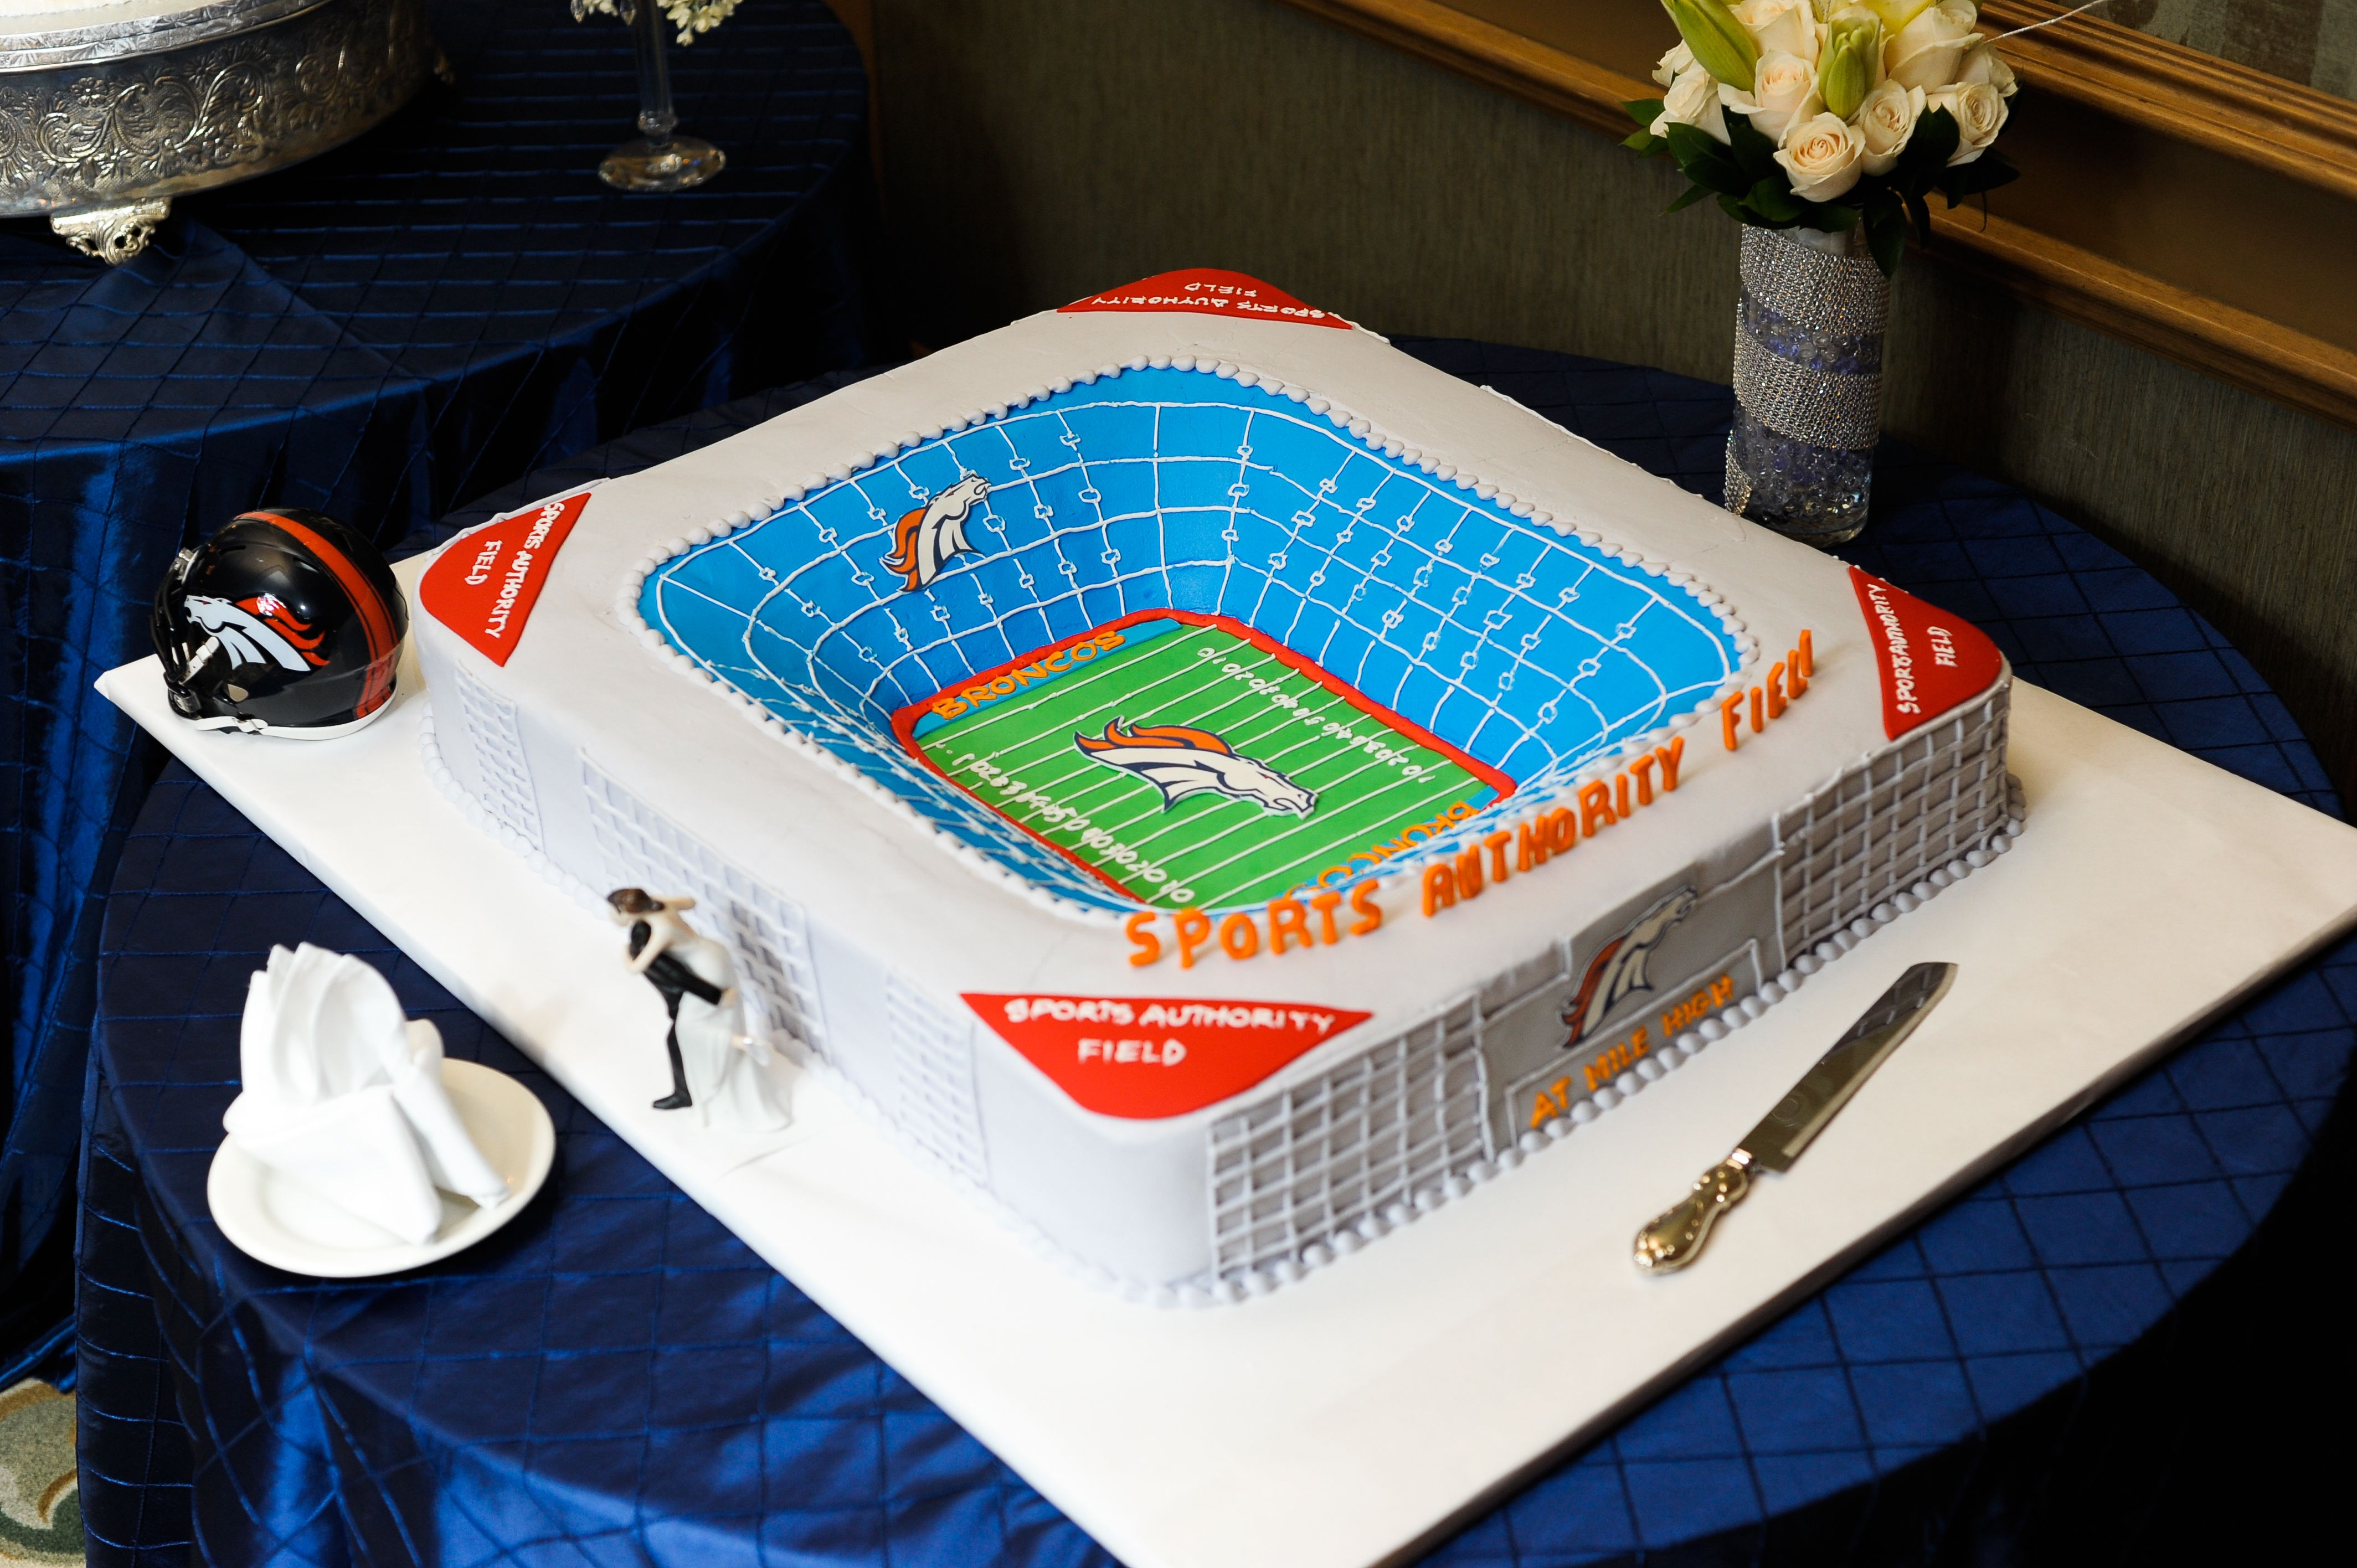 104 Best Images About The Games On Cakes On Pinterest